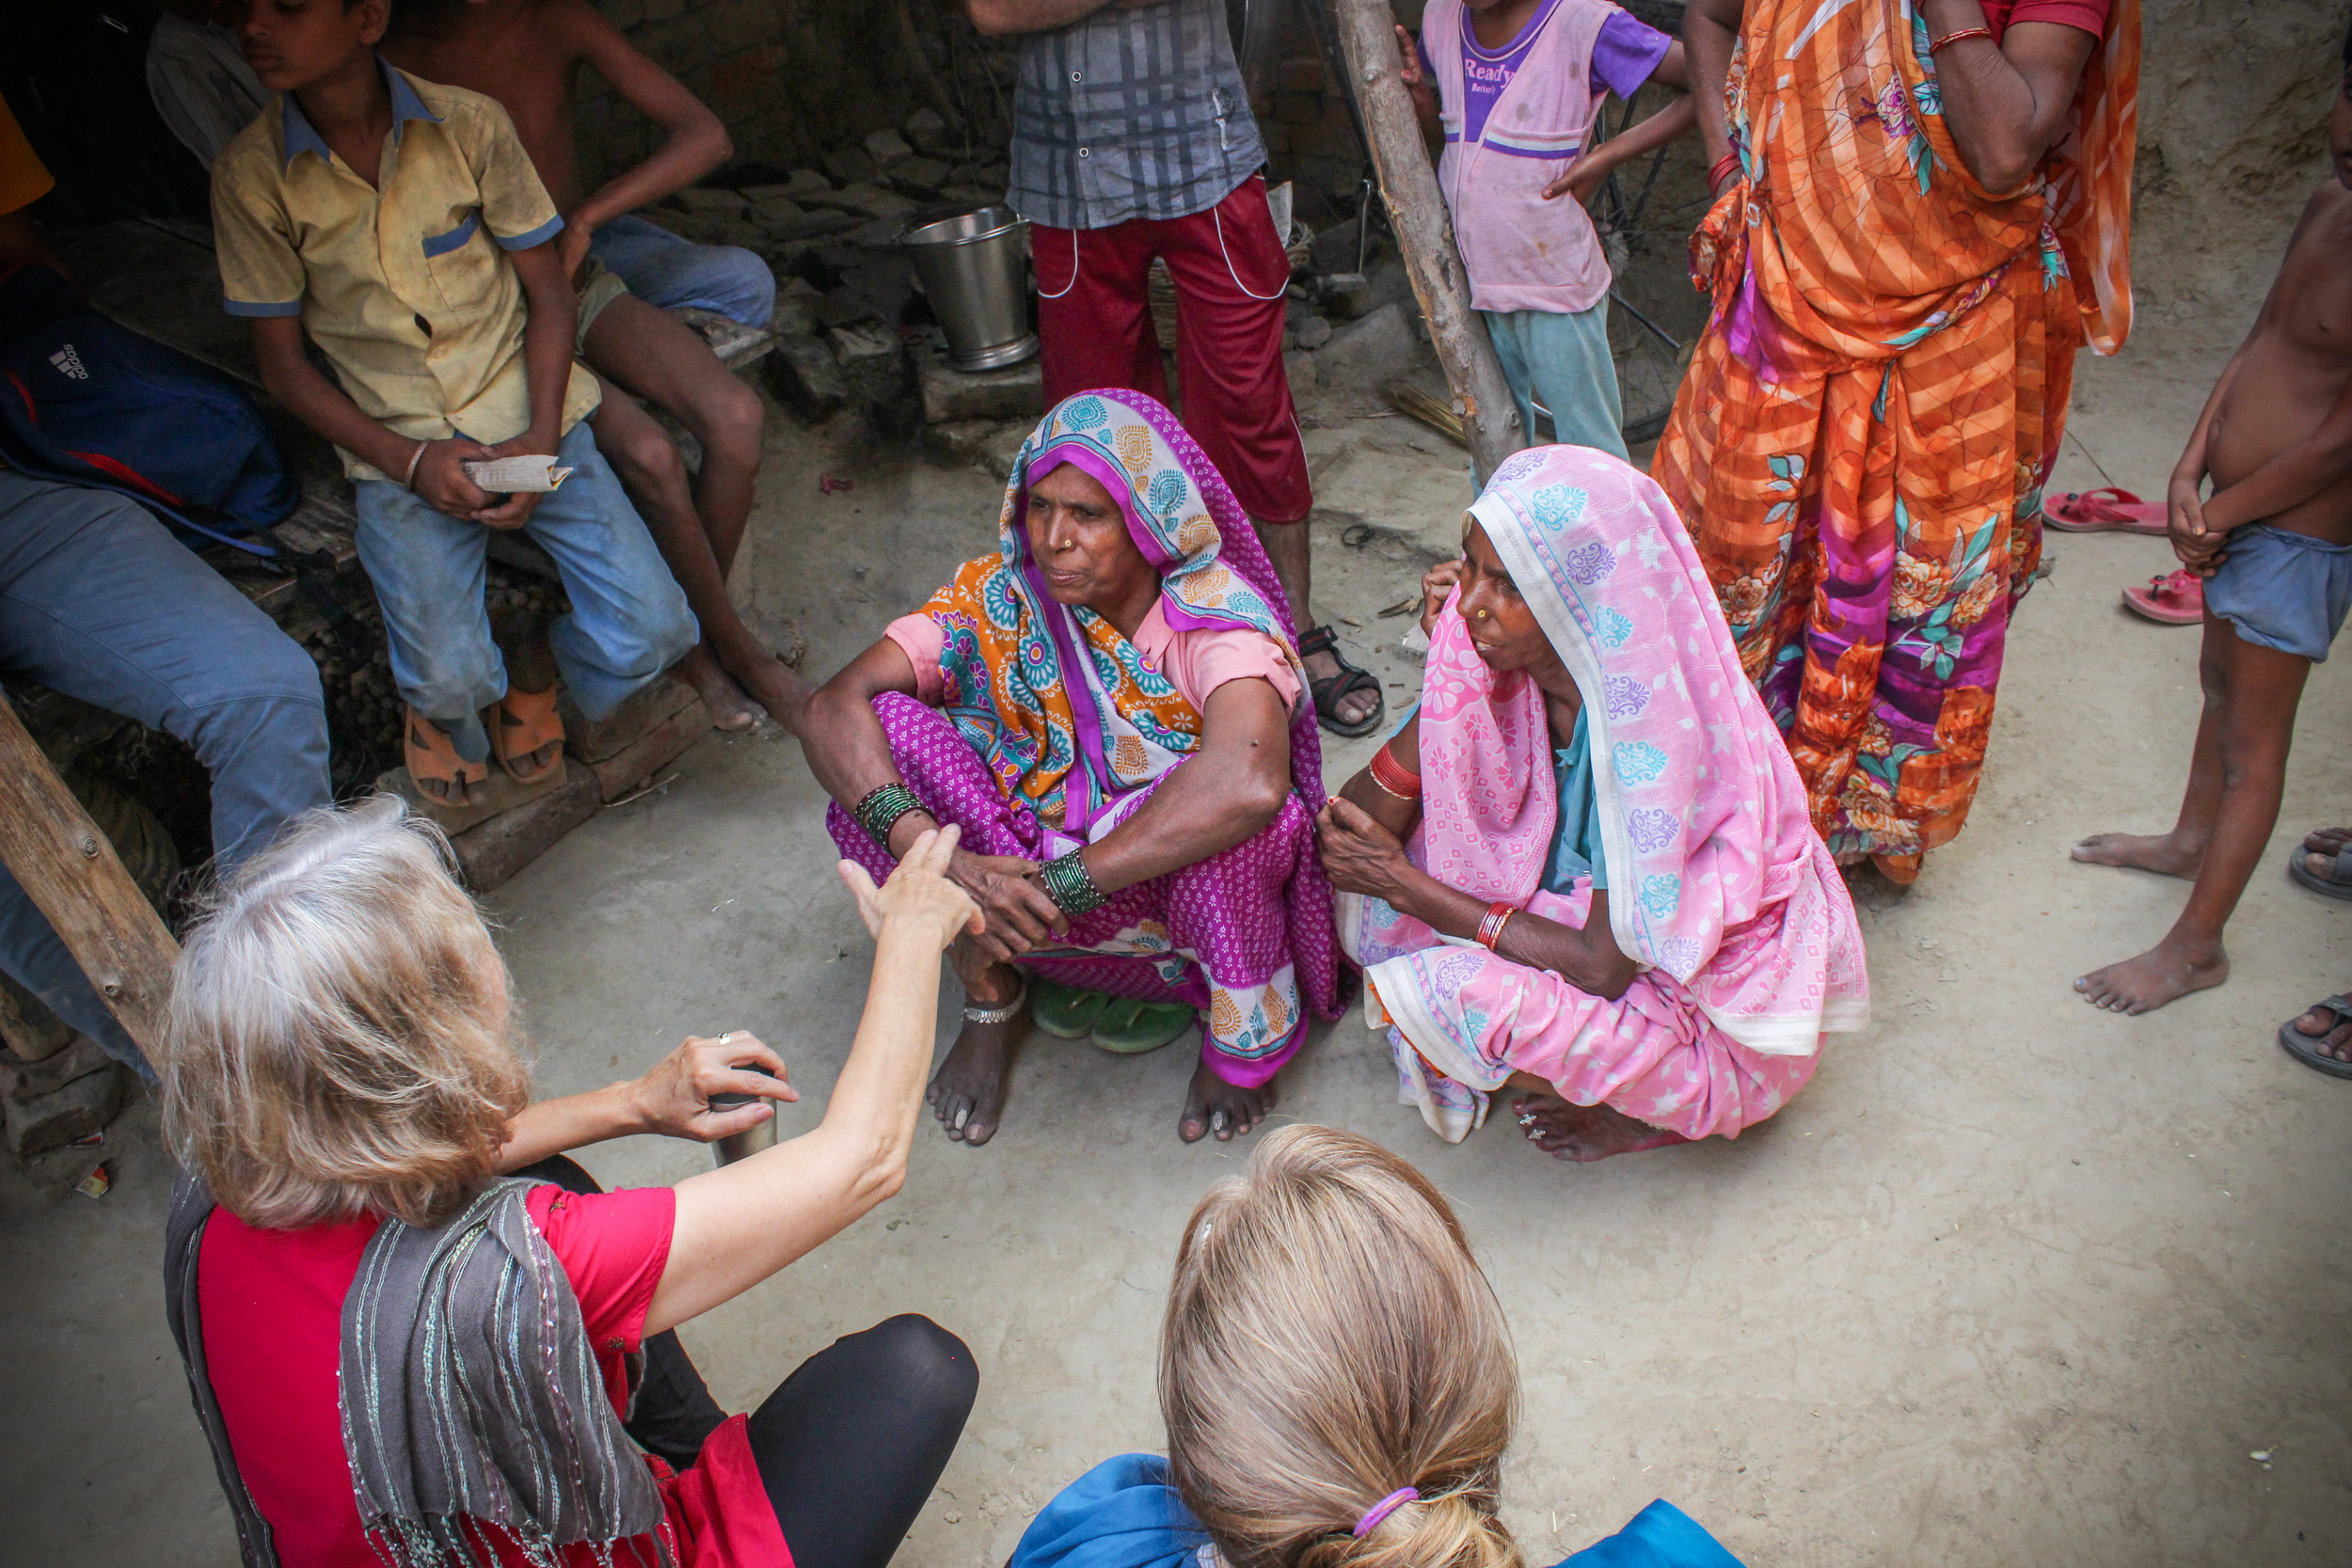 The Interview: A Reflection On Lack Of Opportunities For Women In India